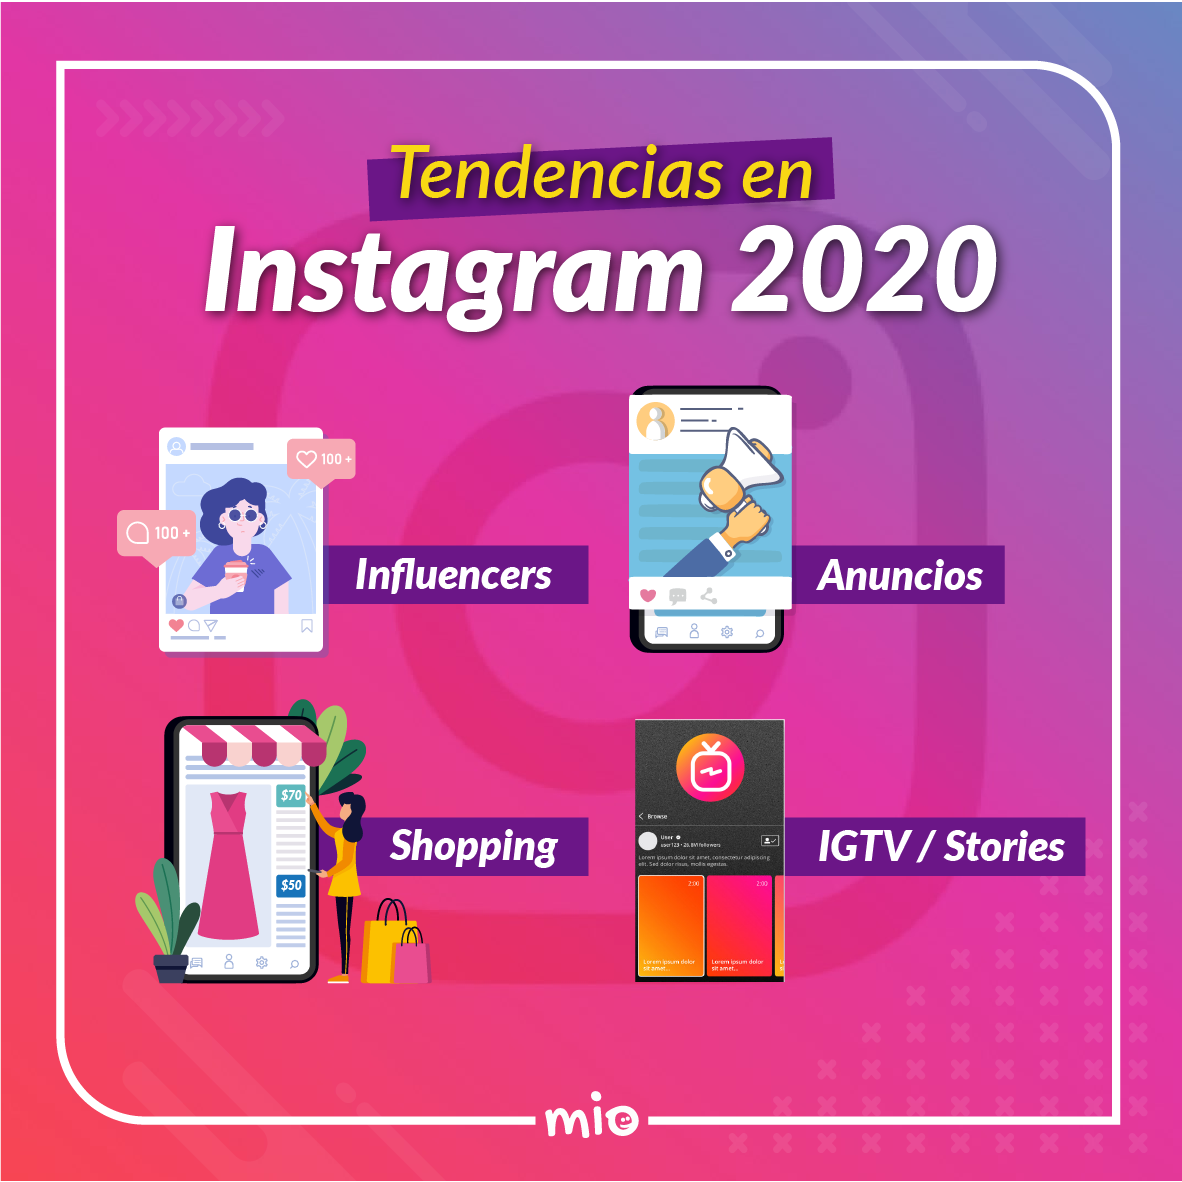 Tendencias en Instagram 2020